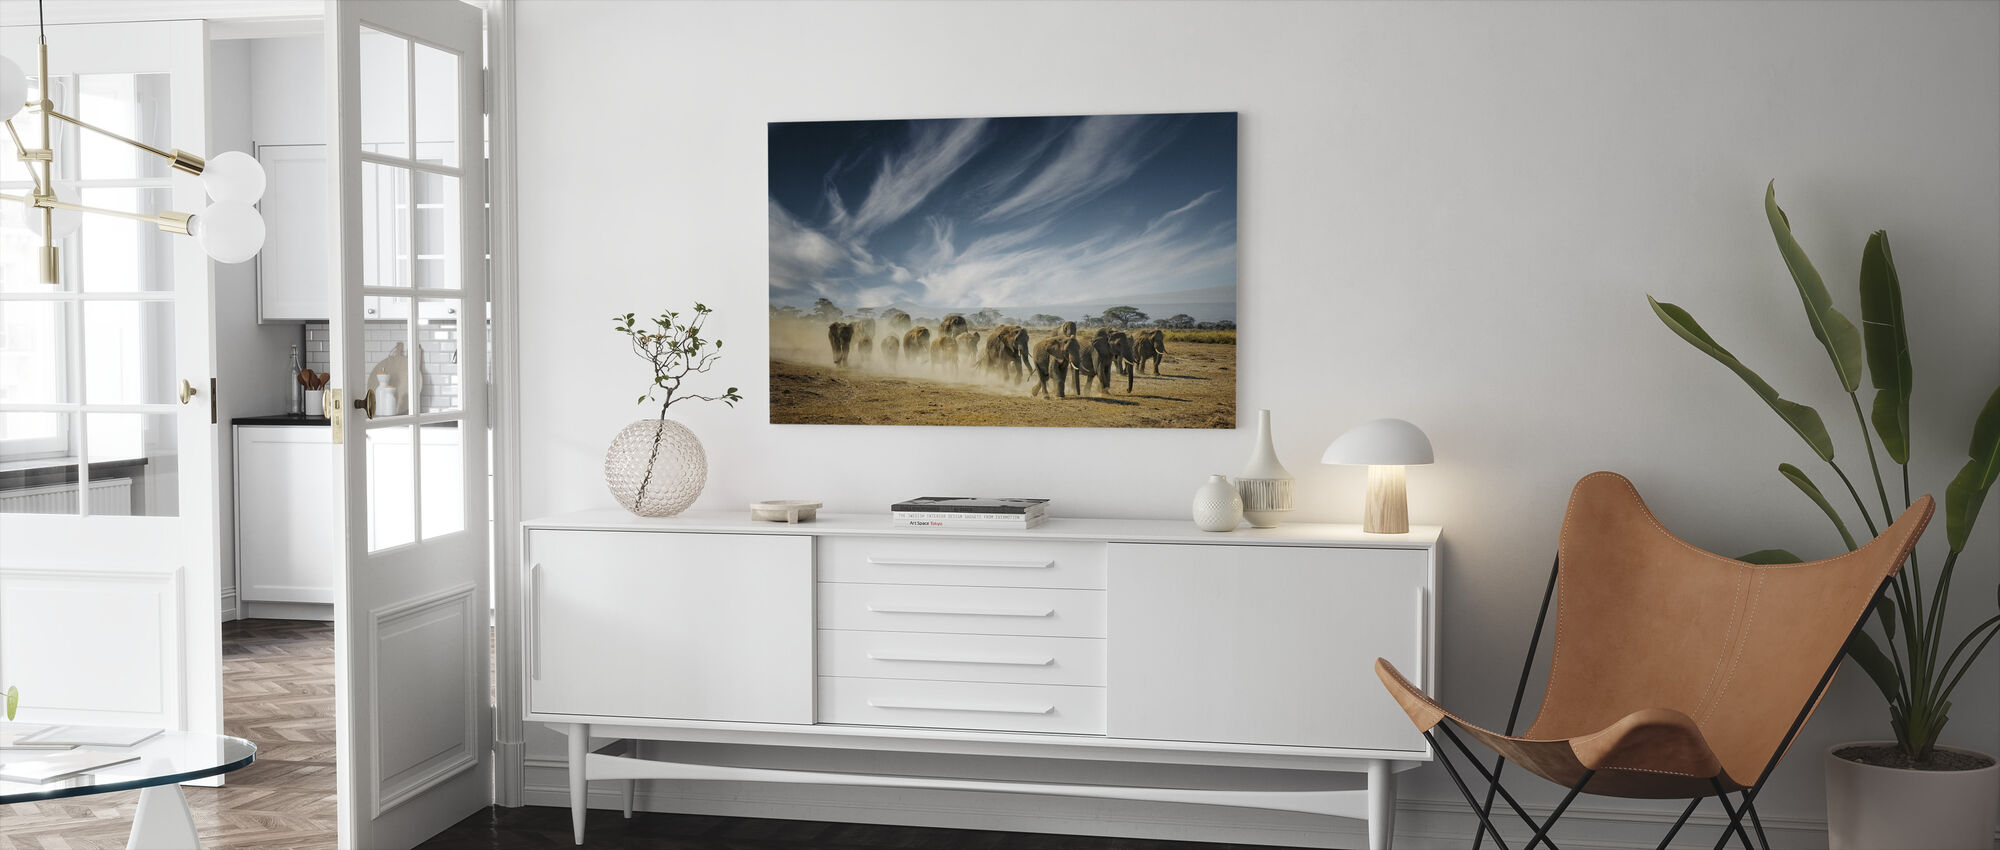 A Very Long Thinking - Canvas print - Living Room